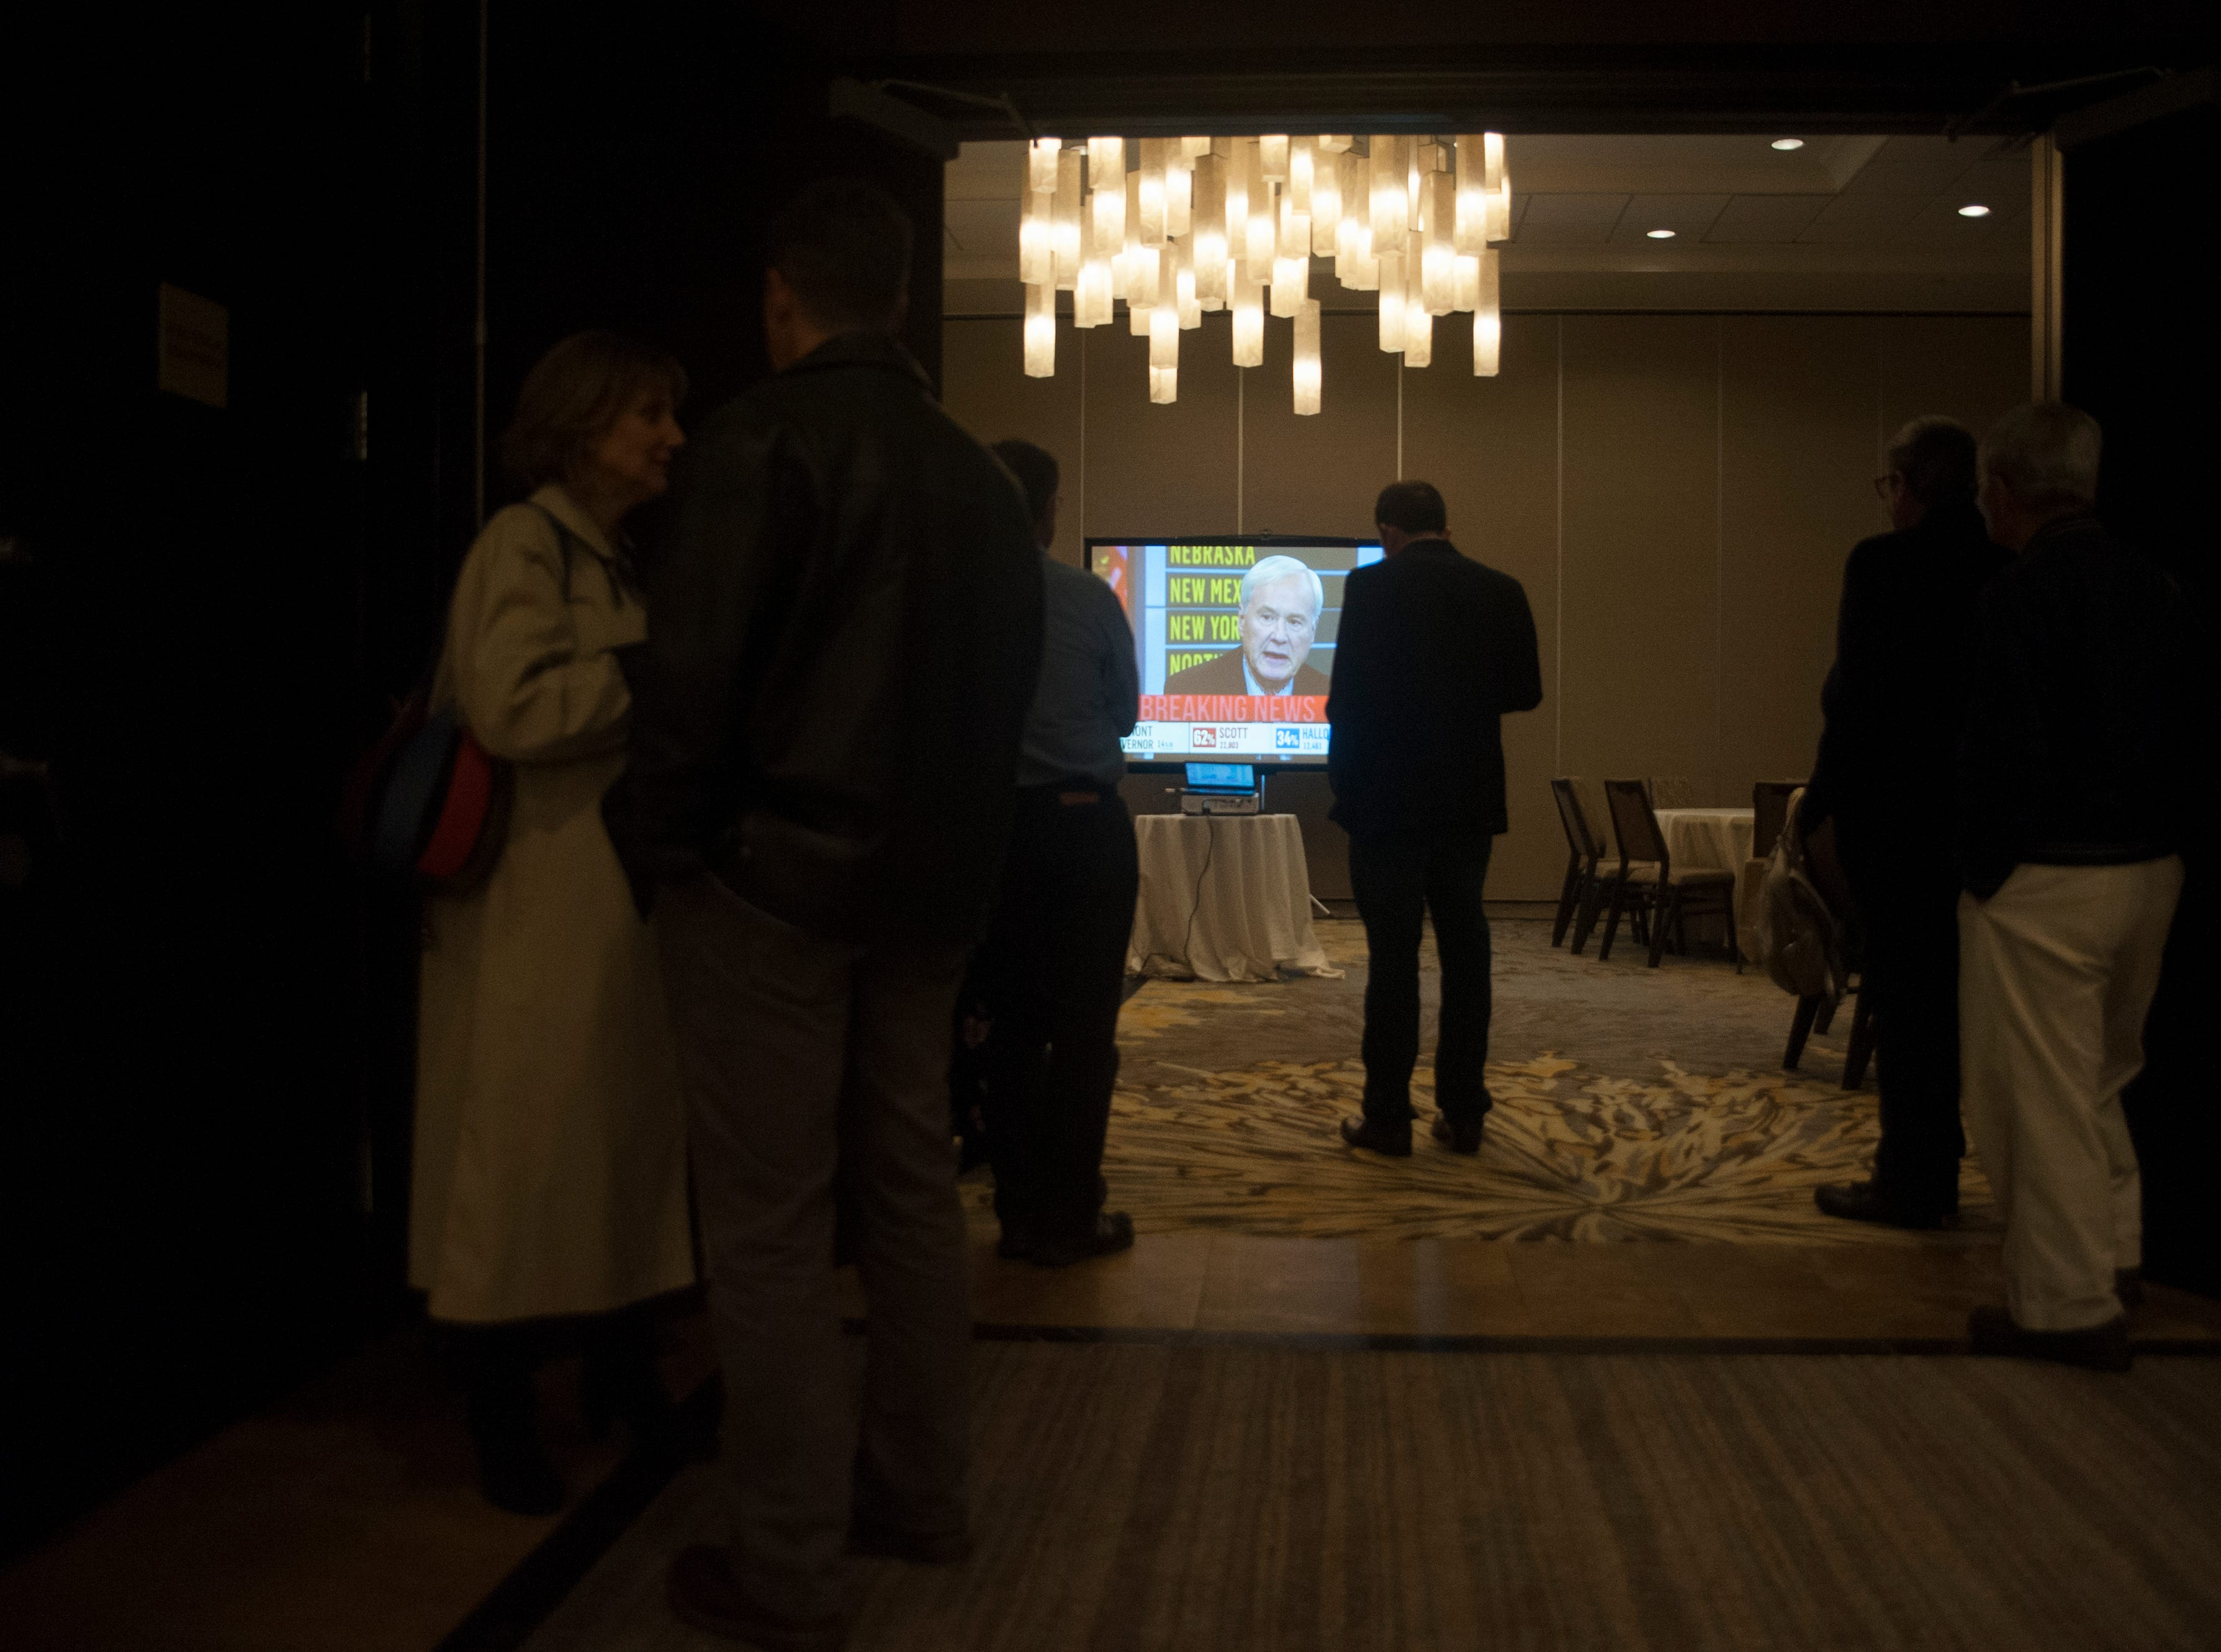 A small crowd gathers to watch election results in a ballroom of the Westin Mount Laurel, the election night headquarters of Democratic 3rd Congressional District candidate Andy Kim on Tuesday, November 6, 2018.